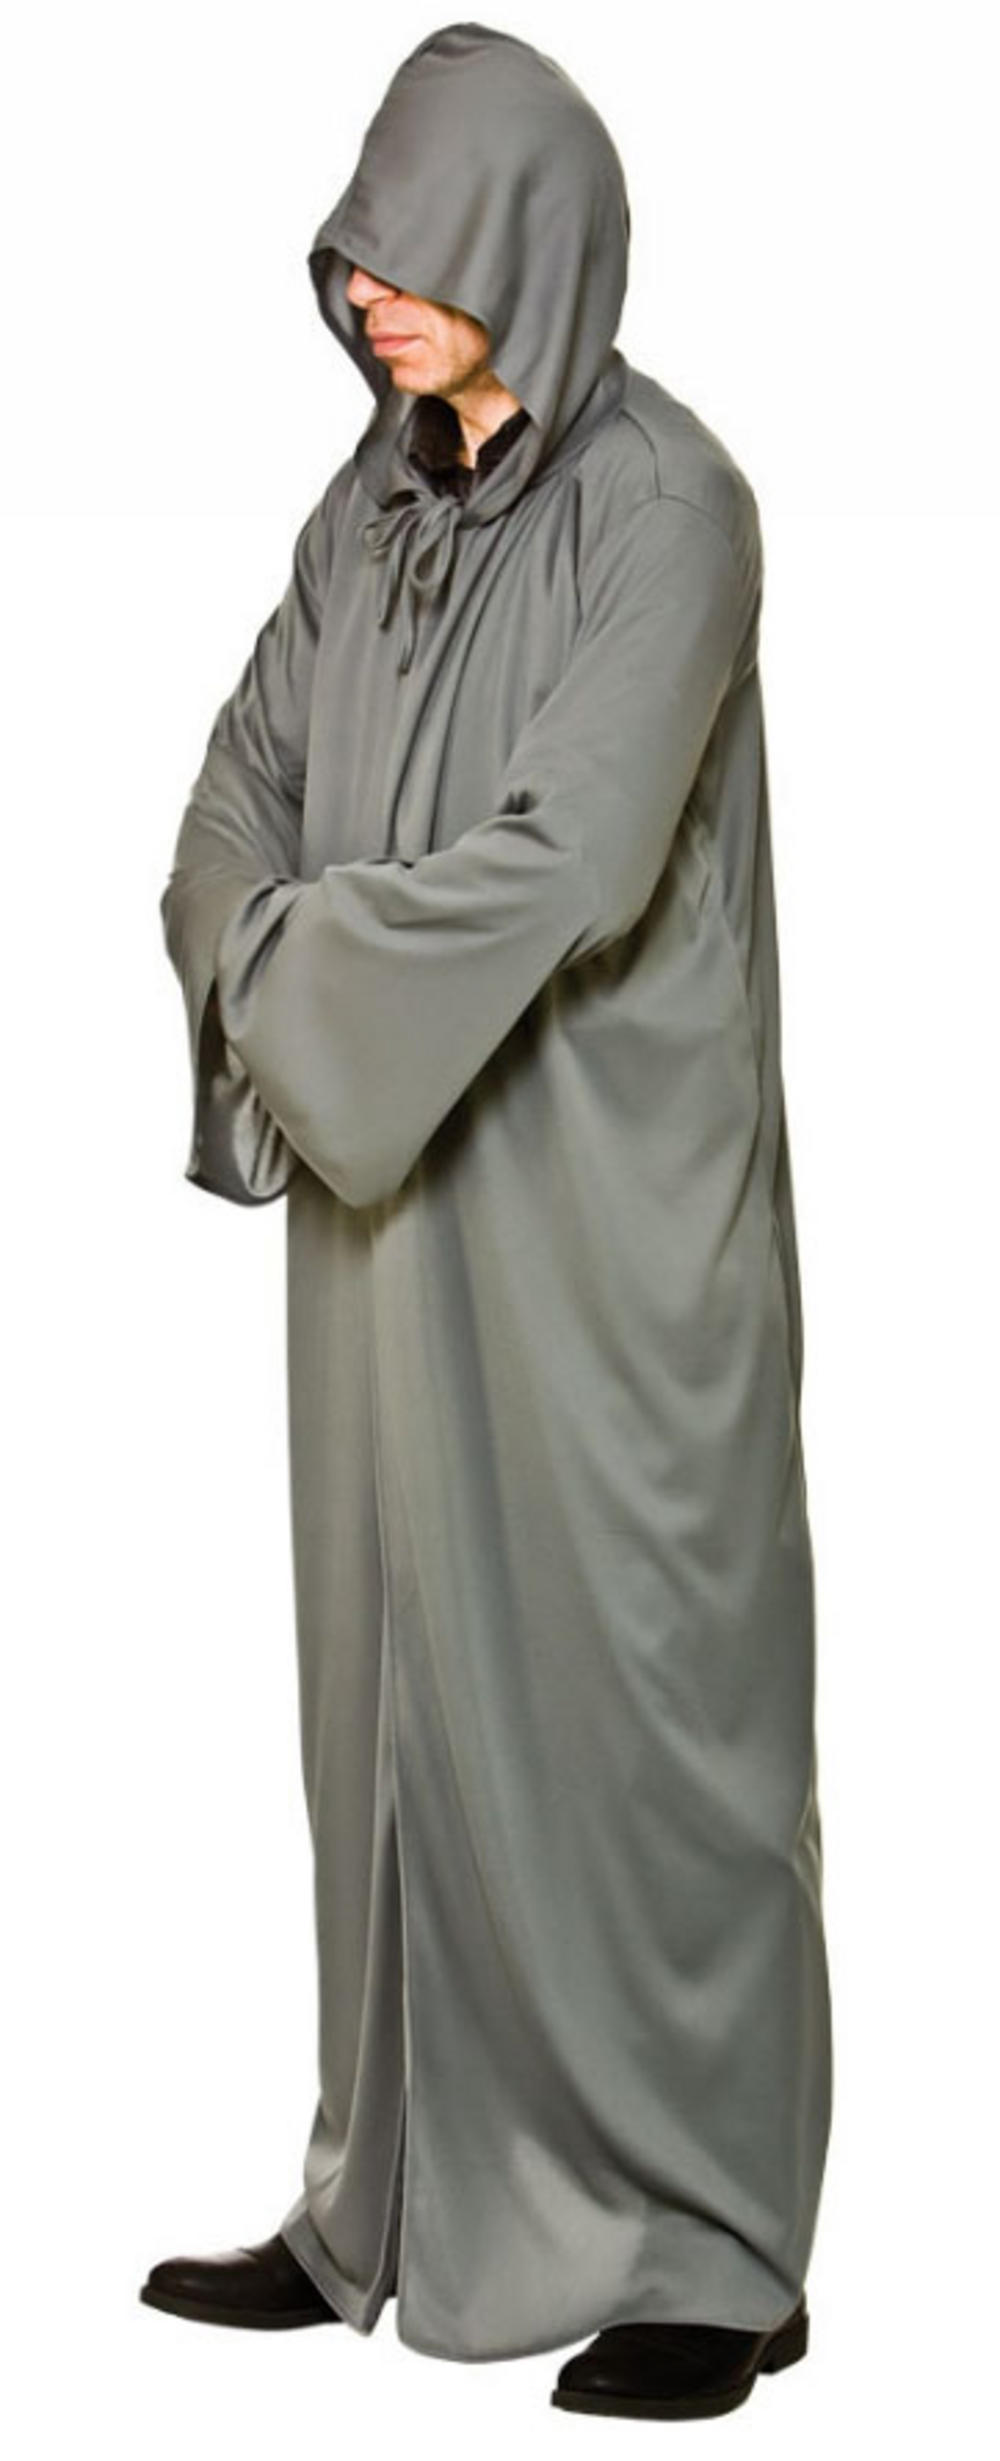 All Items On Sale (4) Free Shipping (5) All Items On Sale (4) Free Shipping. Discount (5) All Discounted Items (4) 10% off and more (4) 15% off and more (4) 20% off and more (3) Robe Factory LLC Star Wars Jedi Master Men's Hooded Bathrobe. Sold by Toynk. $ $ Skylinewears Men's % Terry Cotton Bathrobe Toweling Robe.